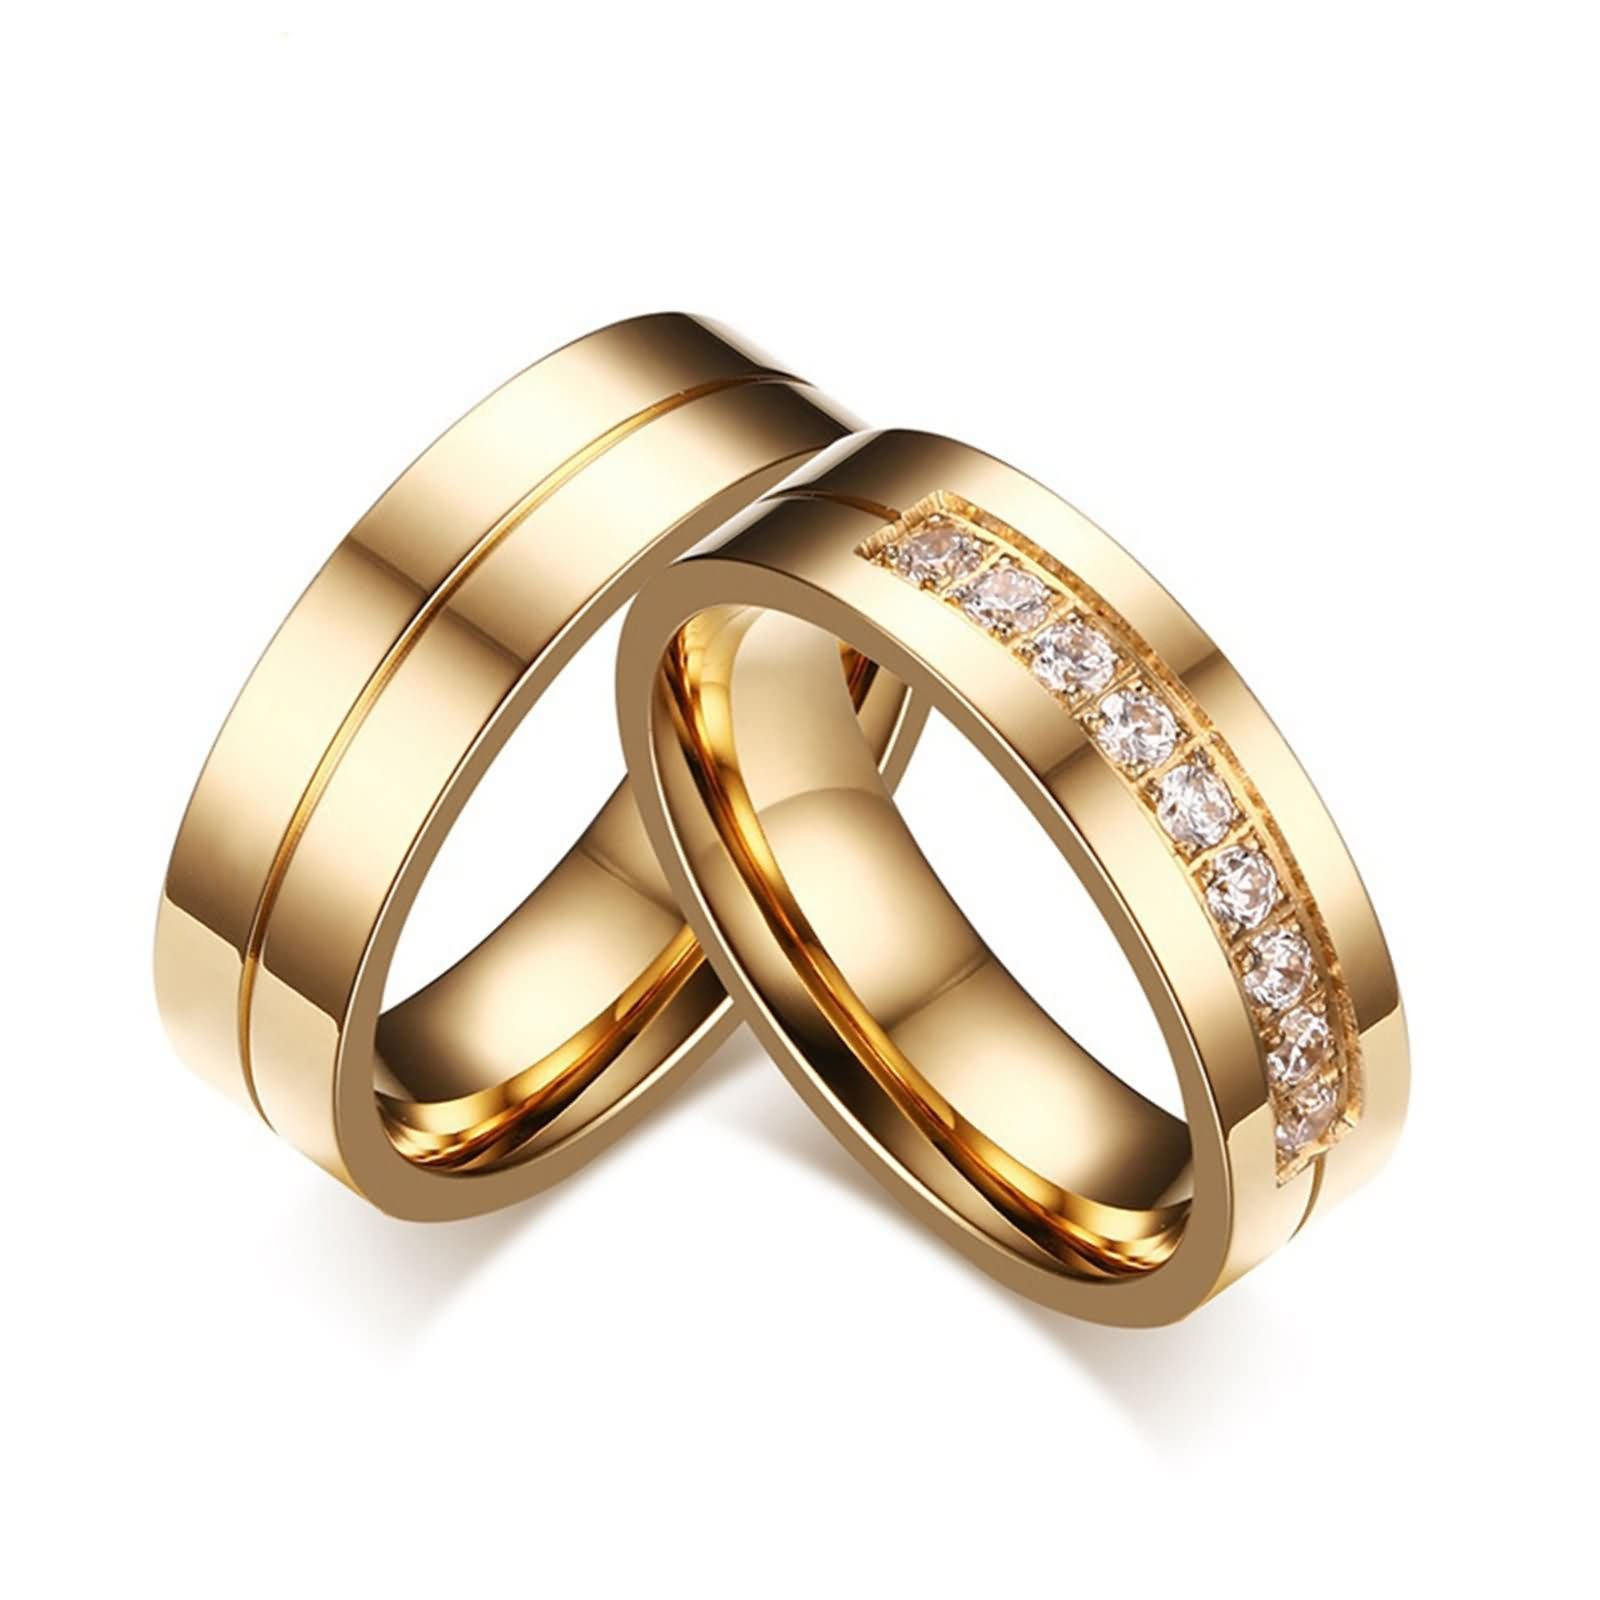 Titanium Rings Couple His and Hers Rings Wedding Stainless Steel Round CZ Women Size 5 & Men Size 10